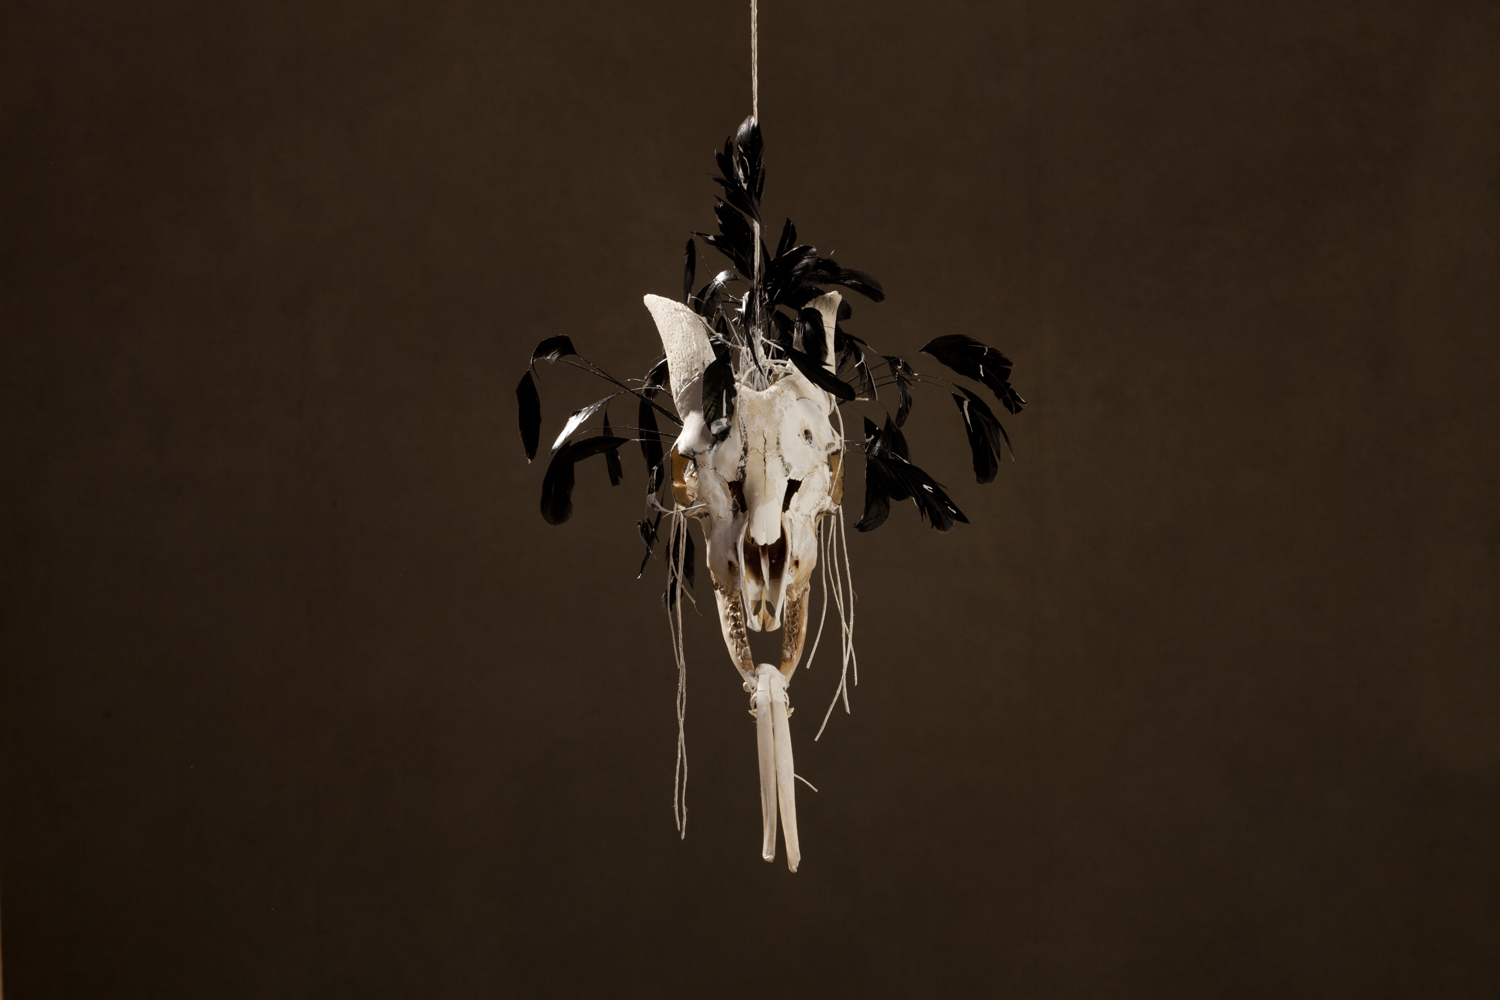 N52, 2011 43 x 33 x 27 cm / 17 x 13 x 10.6 inches Mixed Media / goat Skull